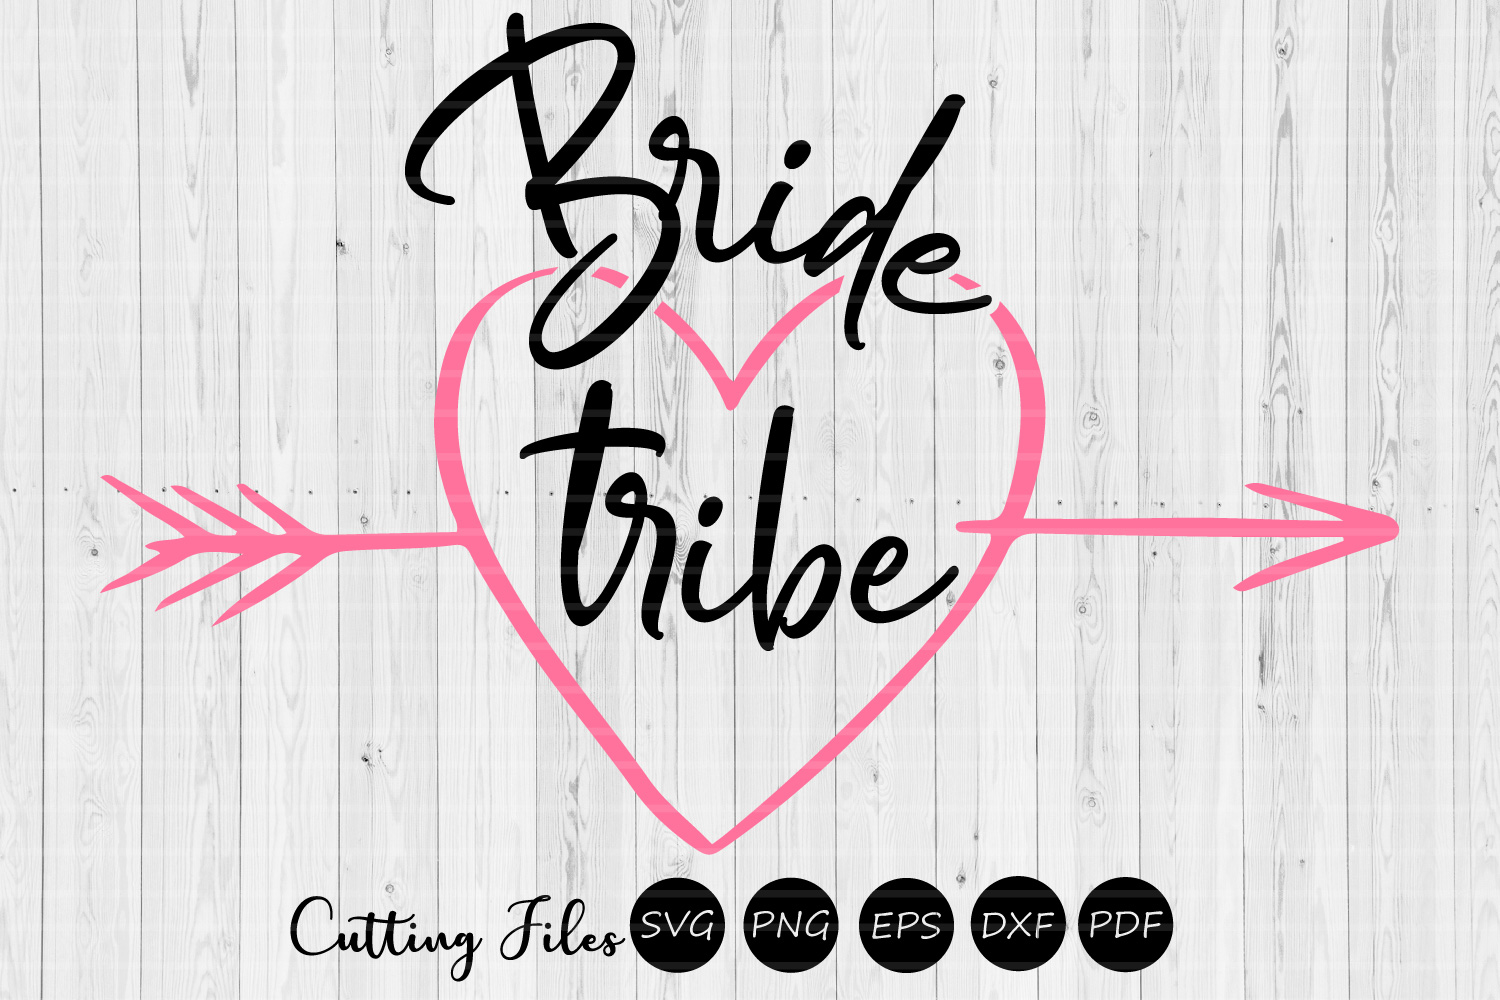 Download Free Bride Tribe Wedding Svg Bridesmaids Graphic By Hd Art SVG Cut Files